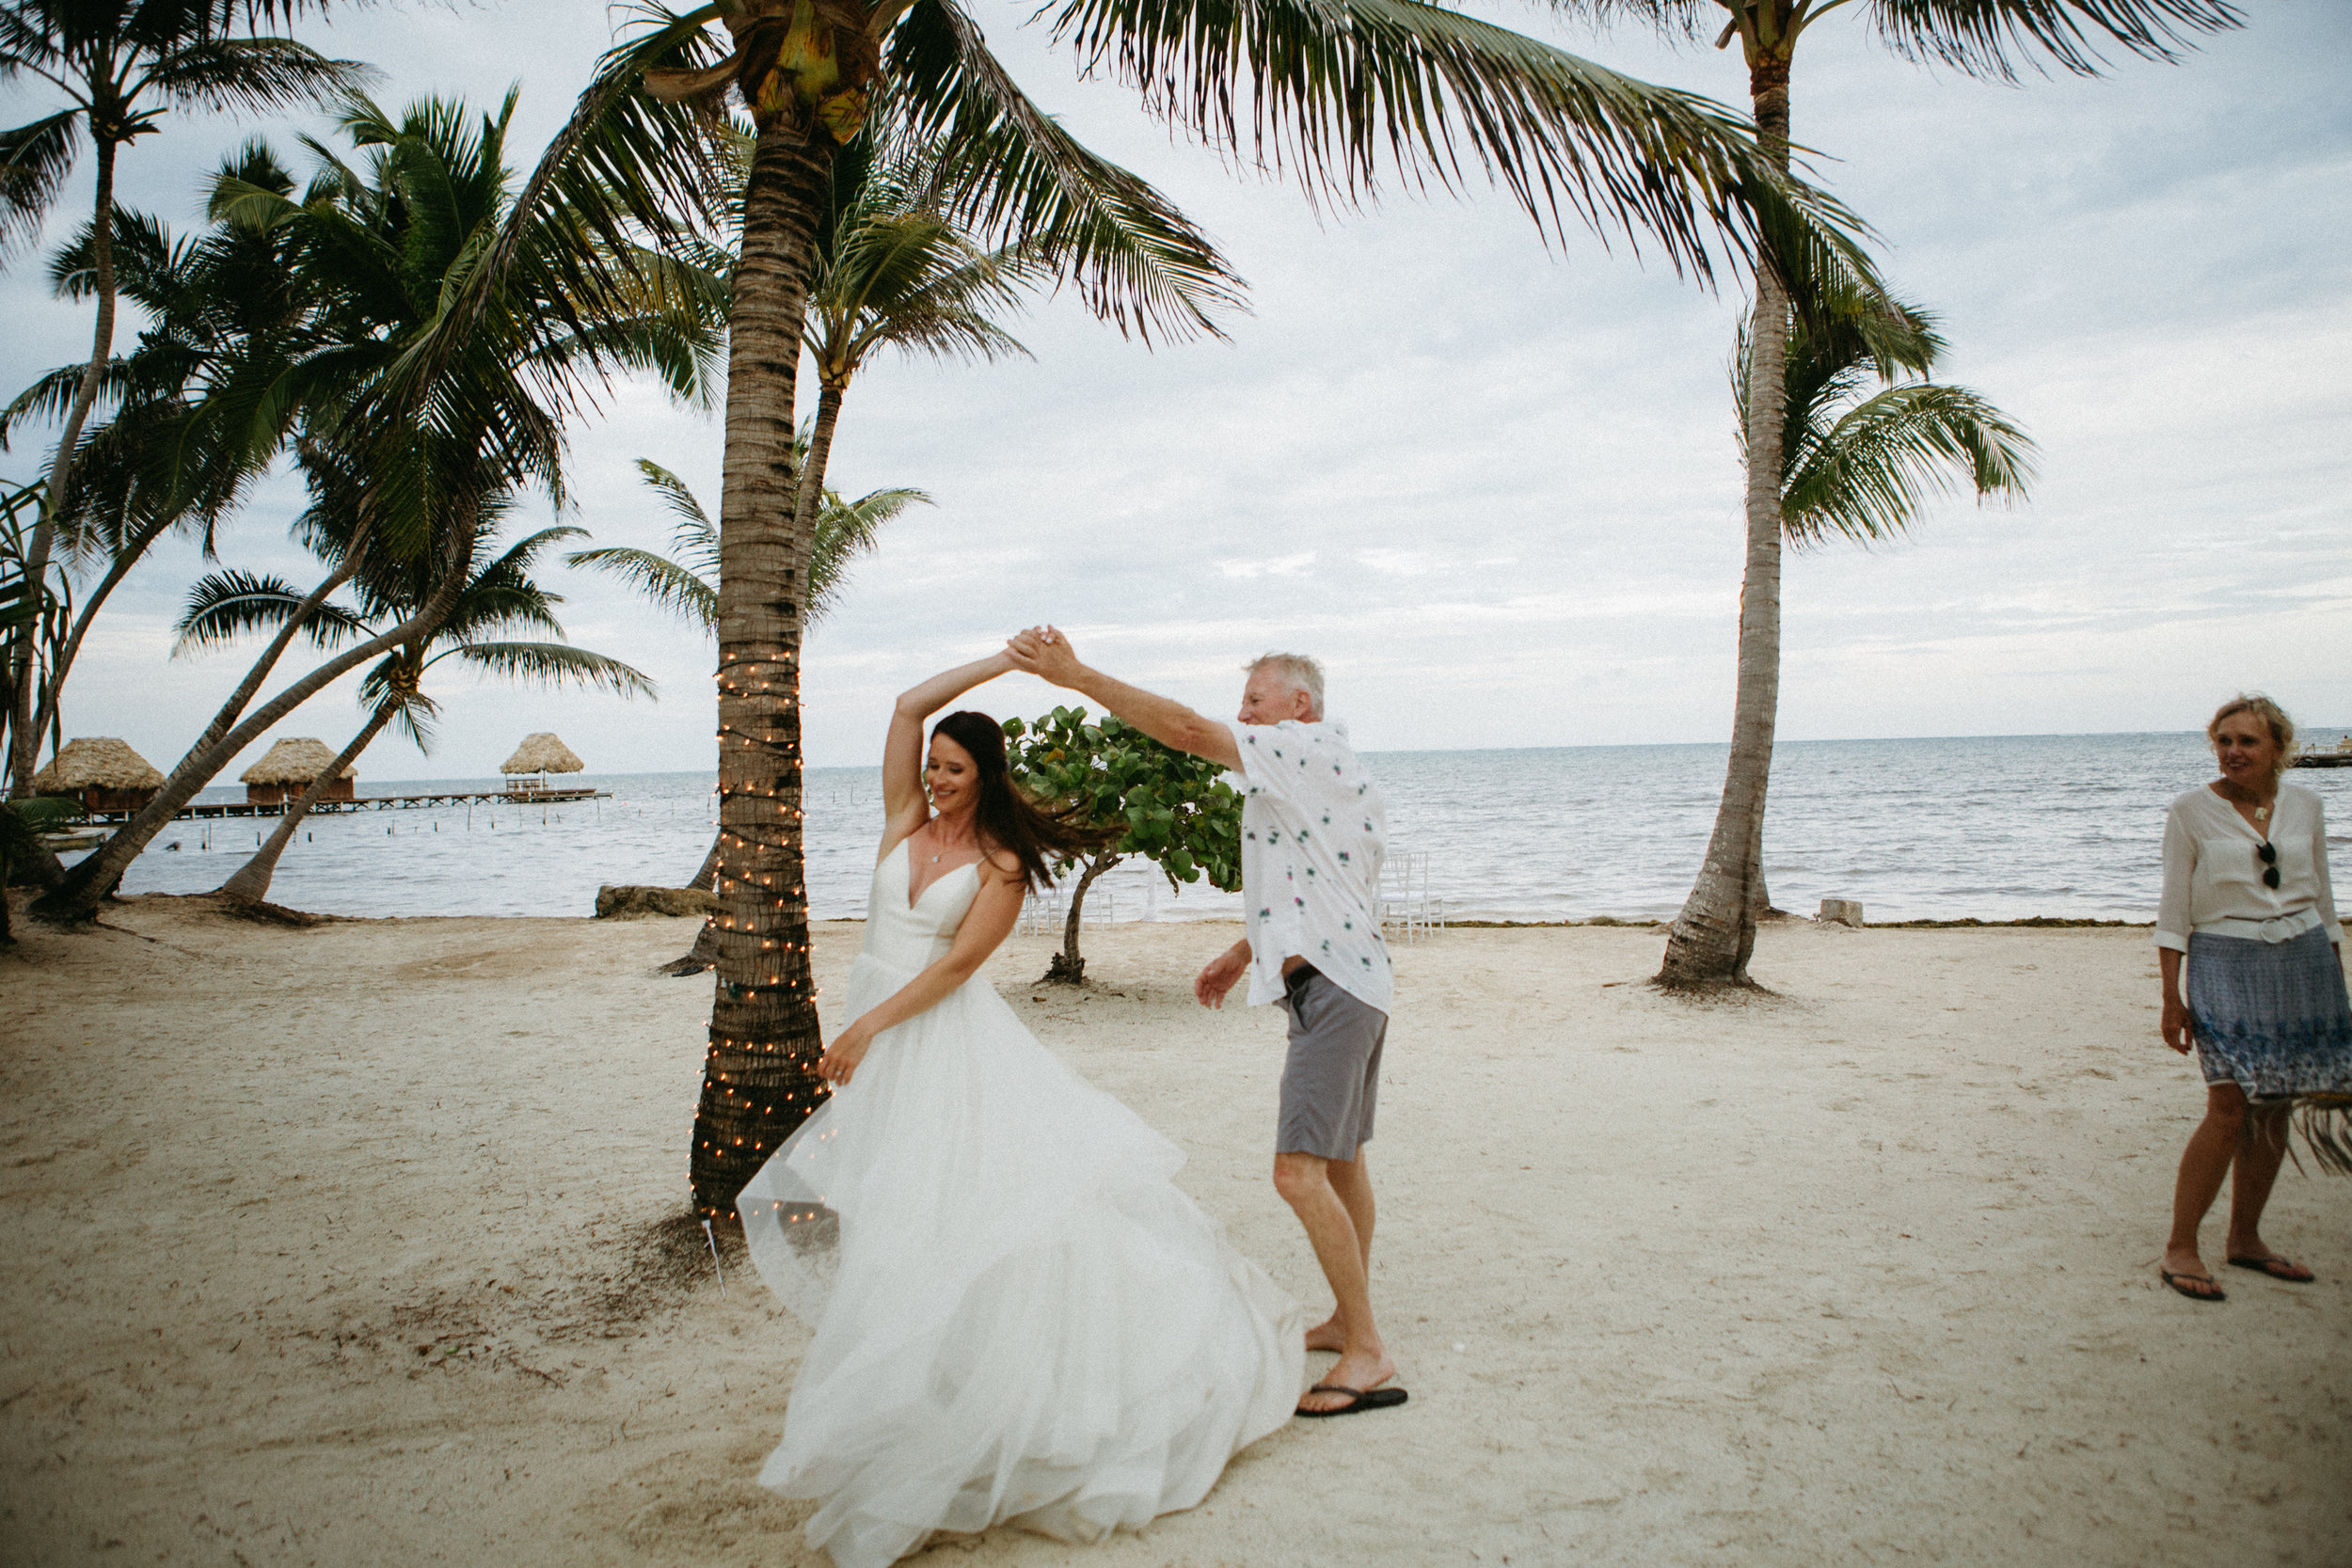 san-pescador-belize-wedding-christinemariephoto-j-k-109.jpg